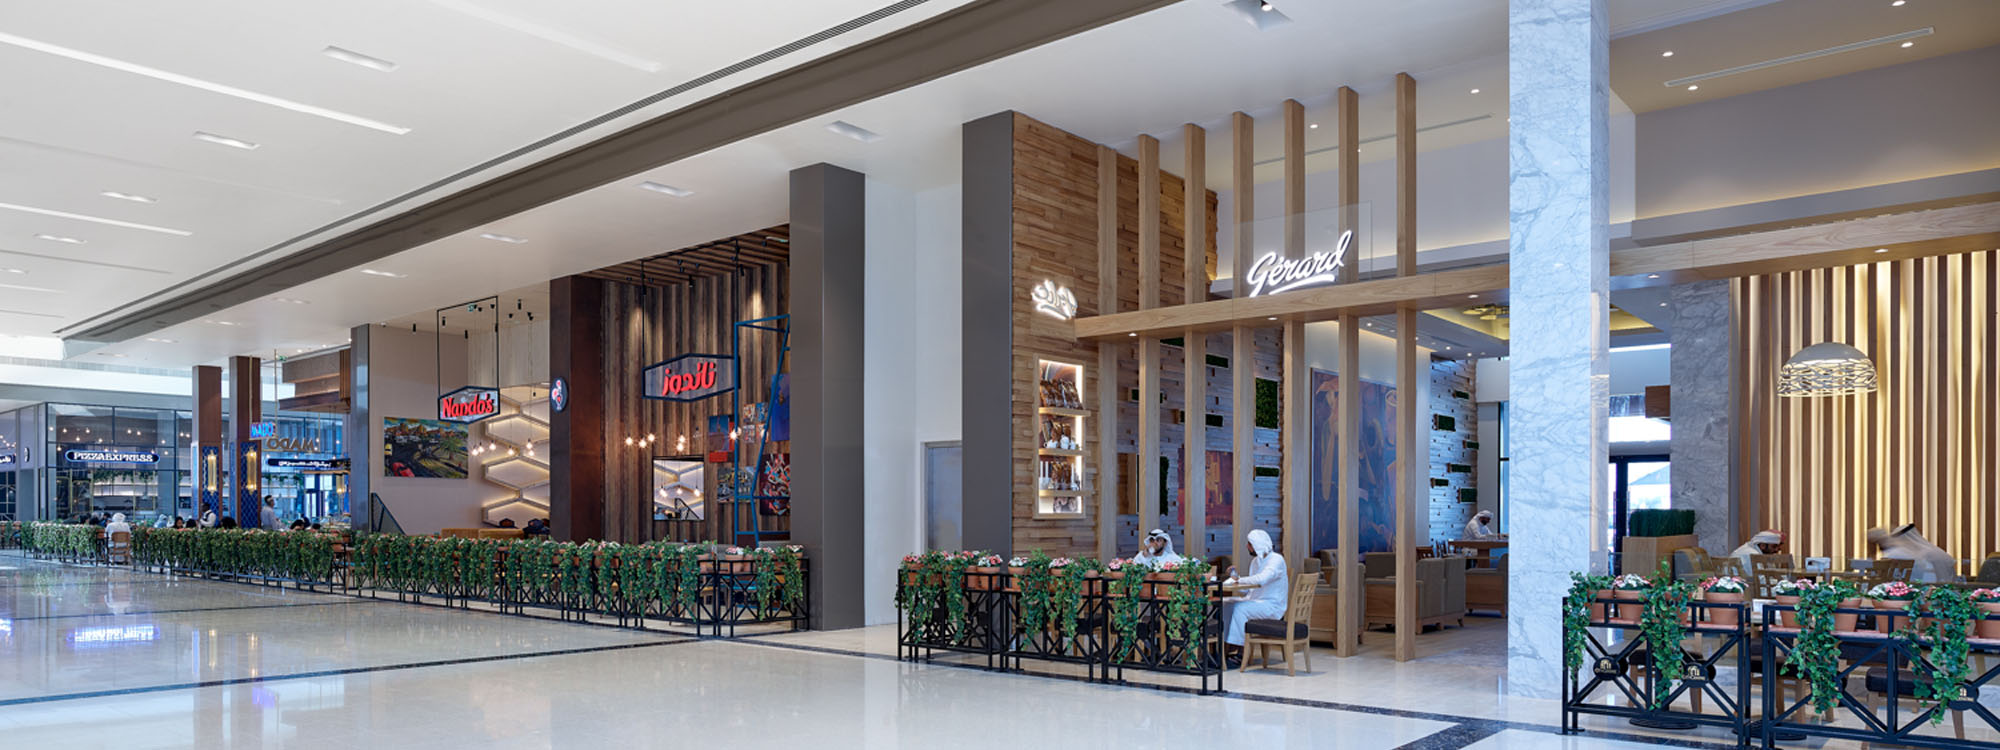 Mall - Shopping - Entertainment | City Centre Ajman